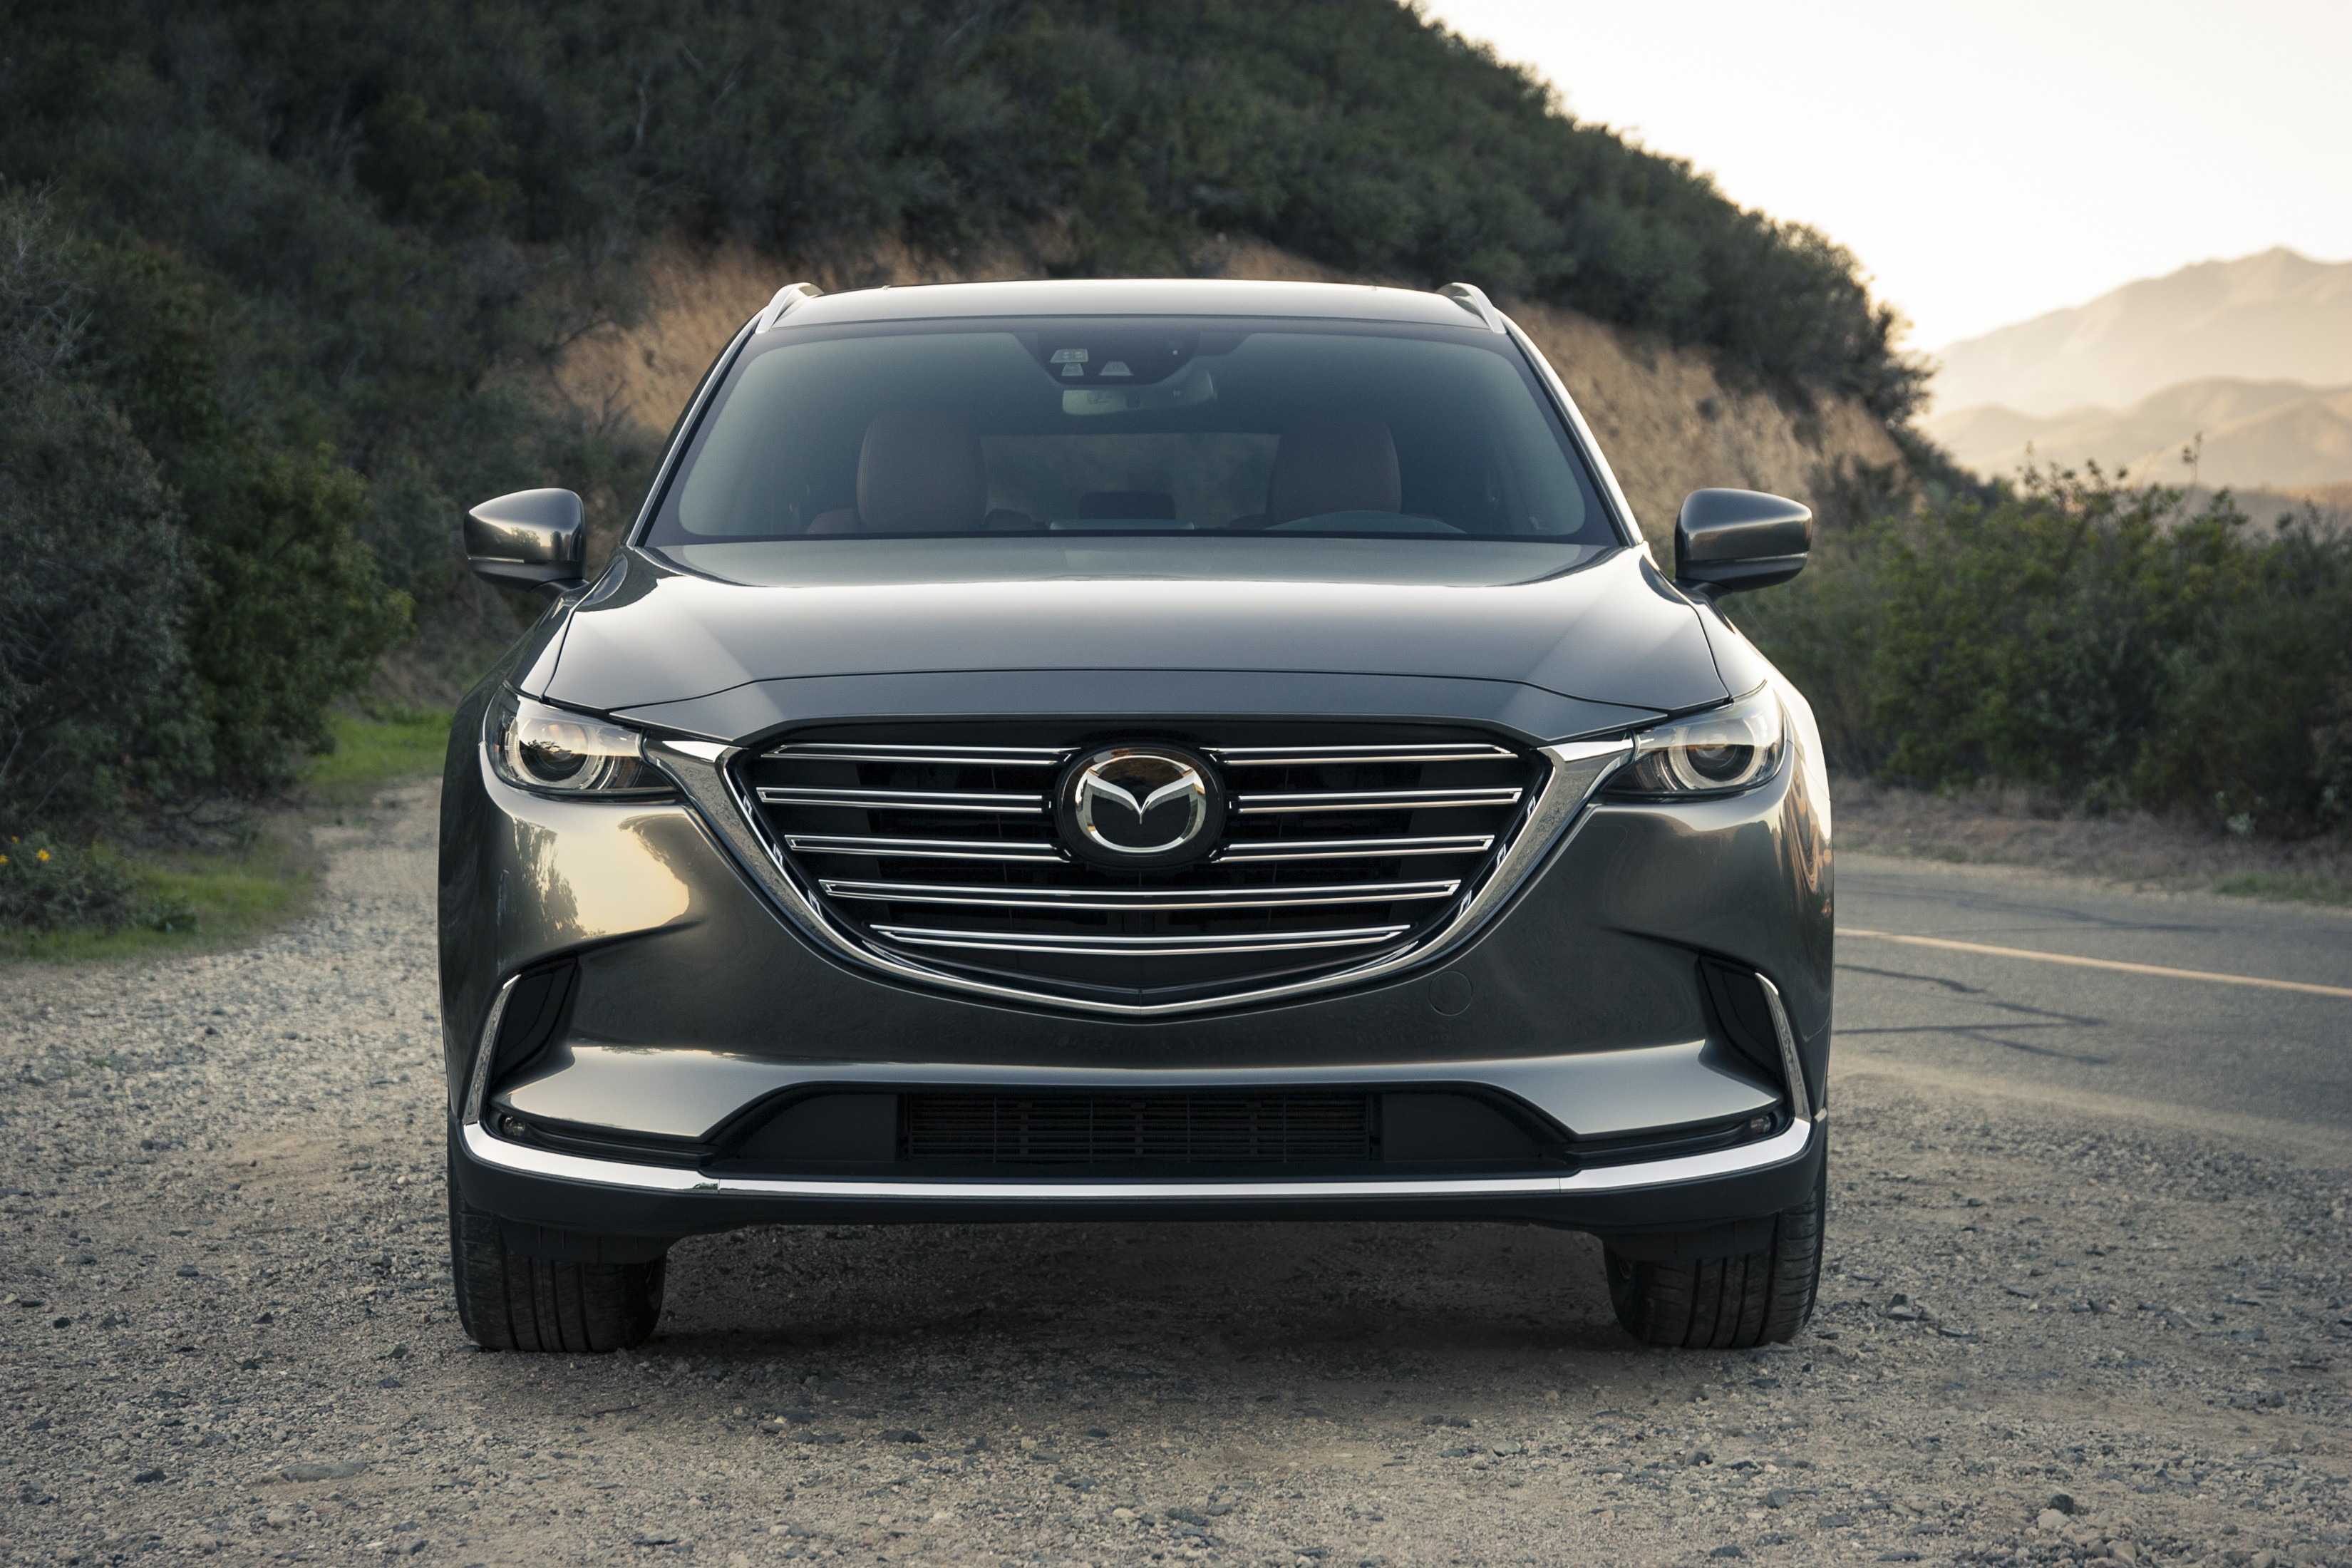 2019 Mazda Cx 9 Gets Apple Carplay Android Auto And Other Features